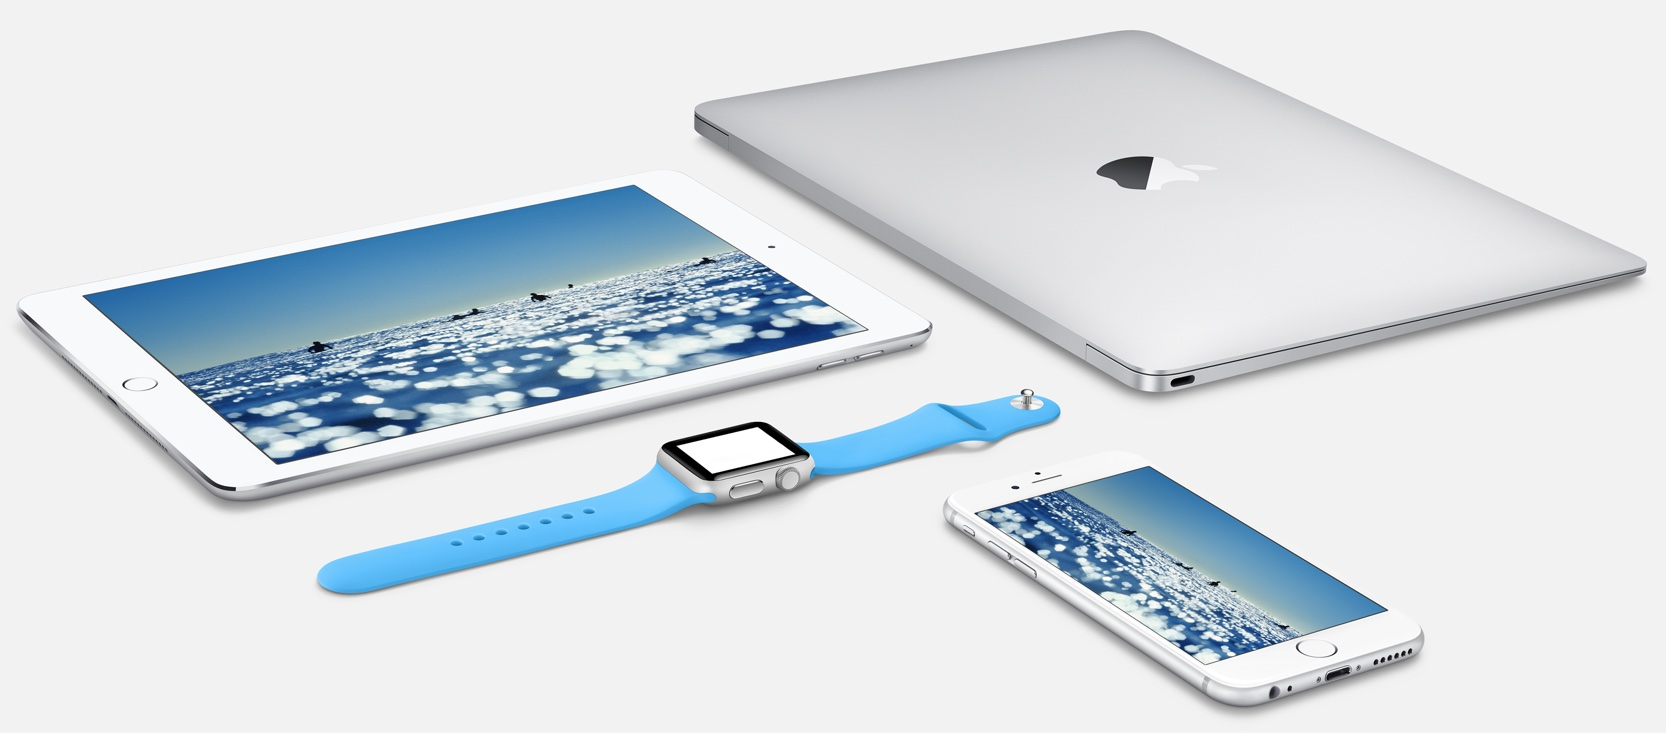 Apple Watch MacBook Air iPad Air iPhone 6 image 001